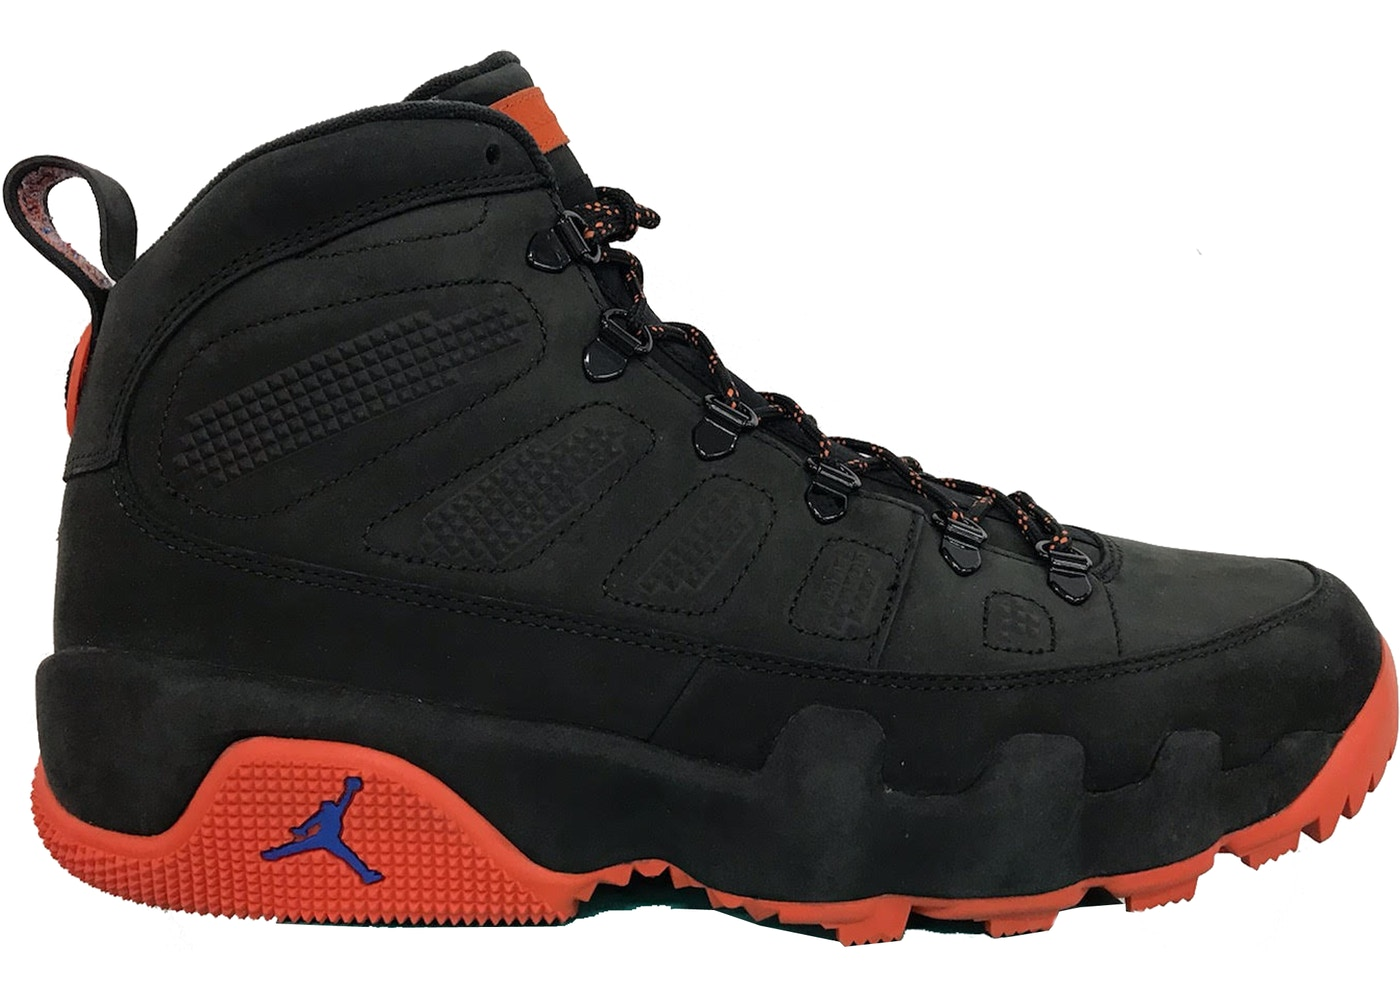 outlet store a785c 14bf6 Air Jordan 9 Shoes - Release Date